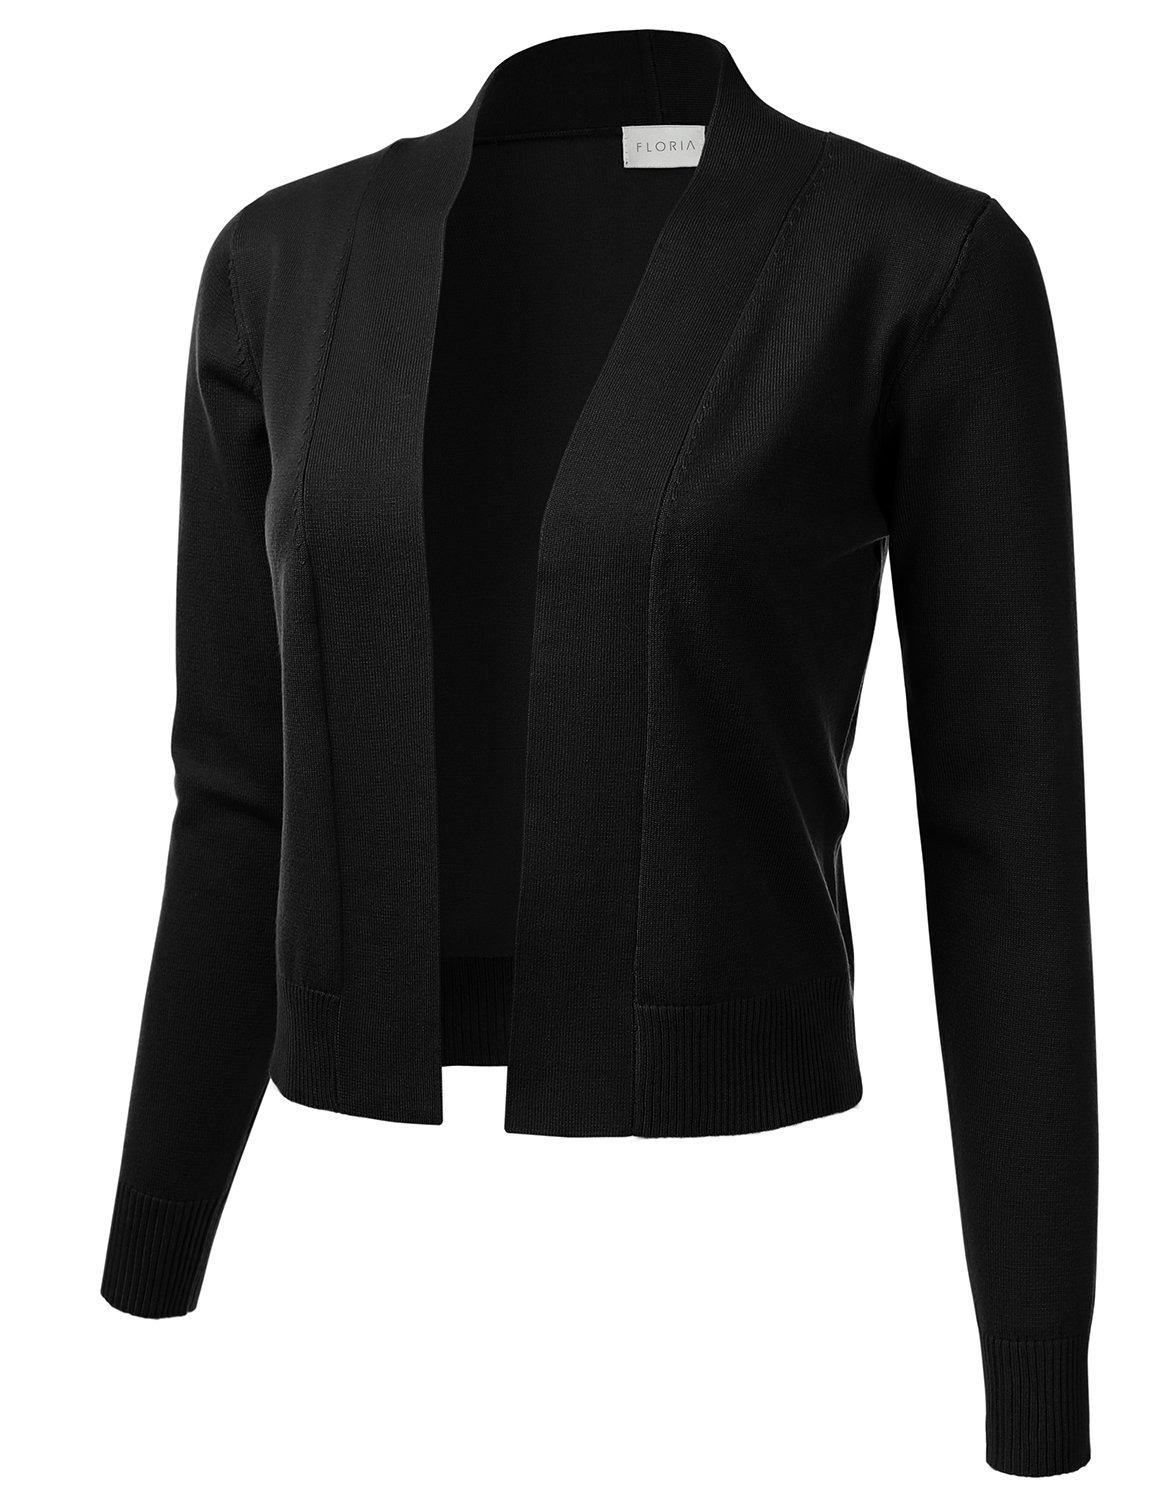 FLORIA Womens Classic Long Sleeve Open Front Cropped Cardigan Black L